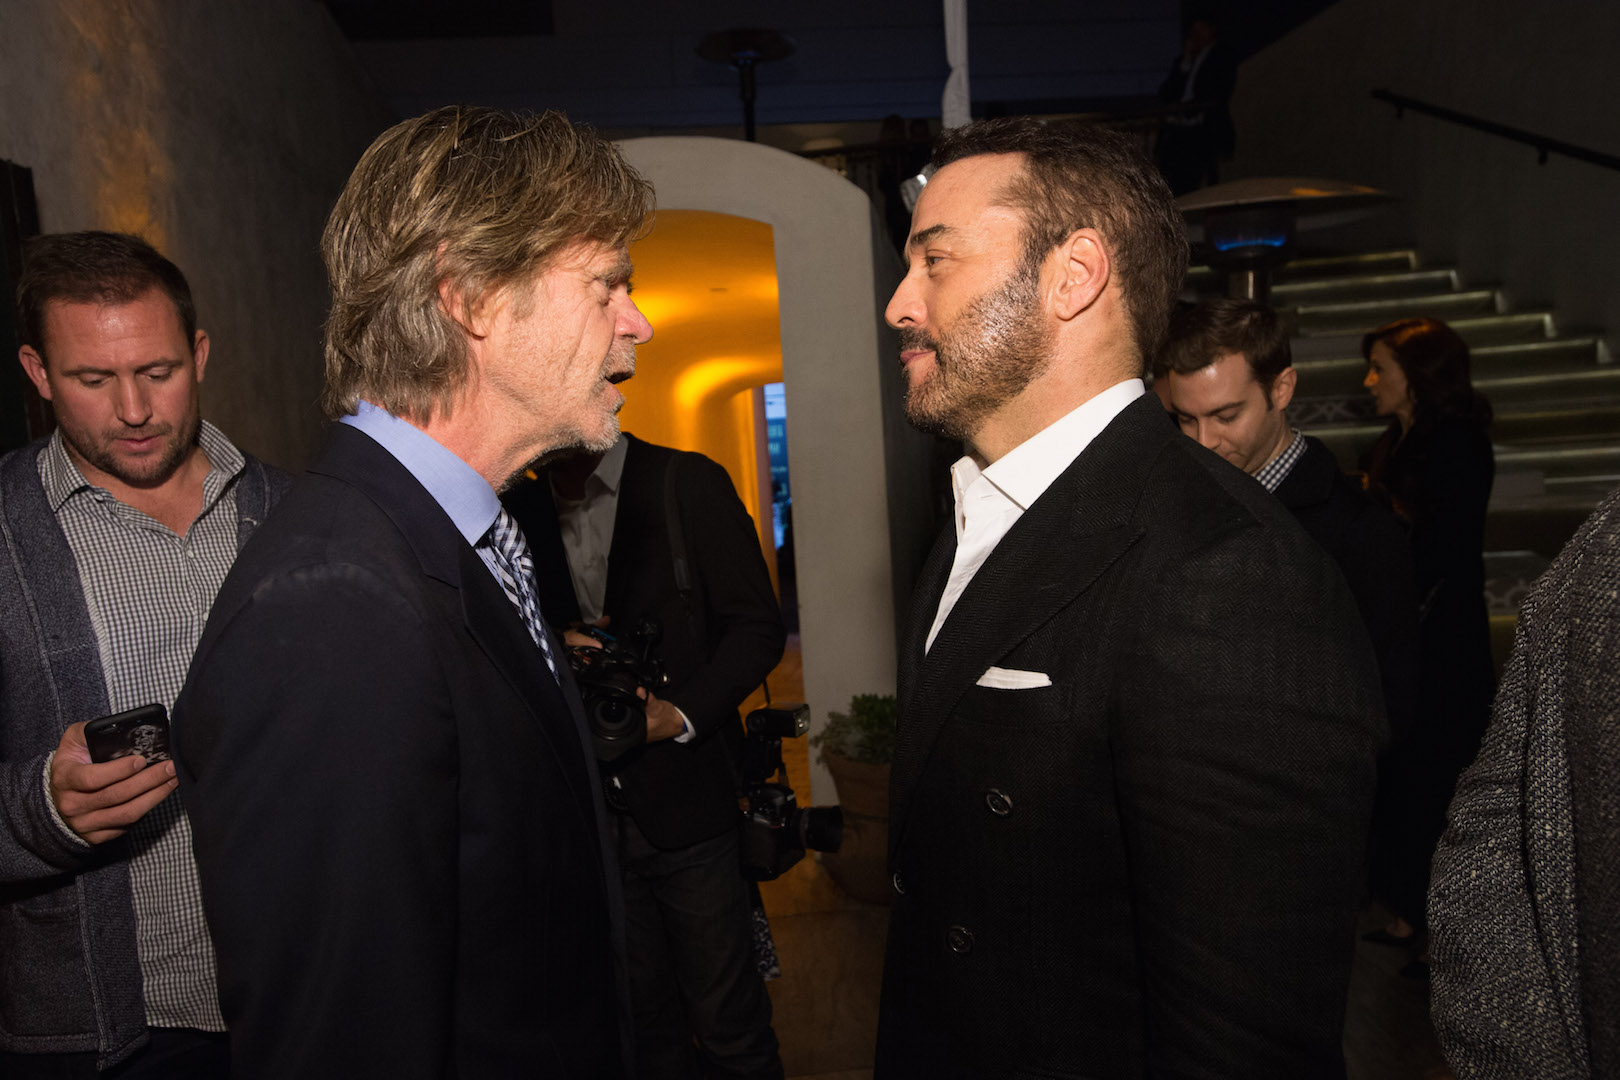 William H. Macy and Jeremy Piven attend a party for the announcement of Corinne Foxx as Miss Golden Globe 2016 for the 73rd Annual Golden Globe Awards set to air live on NBC on January 10, 2016.  President Lorenzo Soria made the announcement on November 17, 2015 from Ysabel Restaurant in West Hollywood.